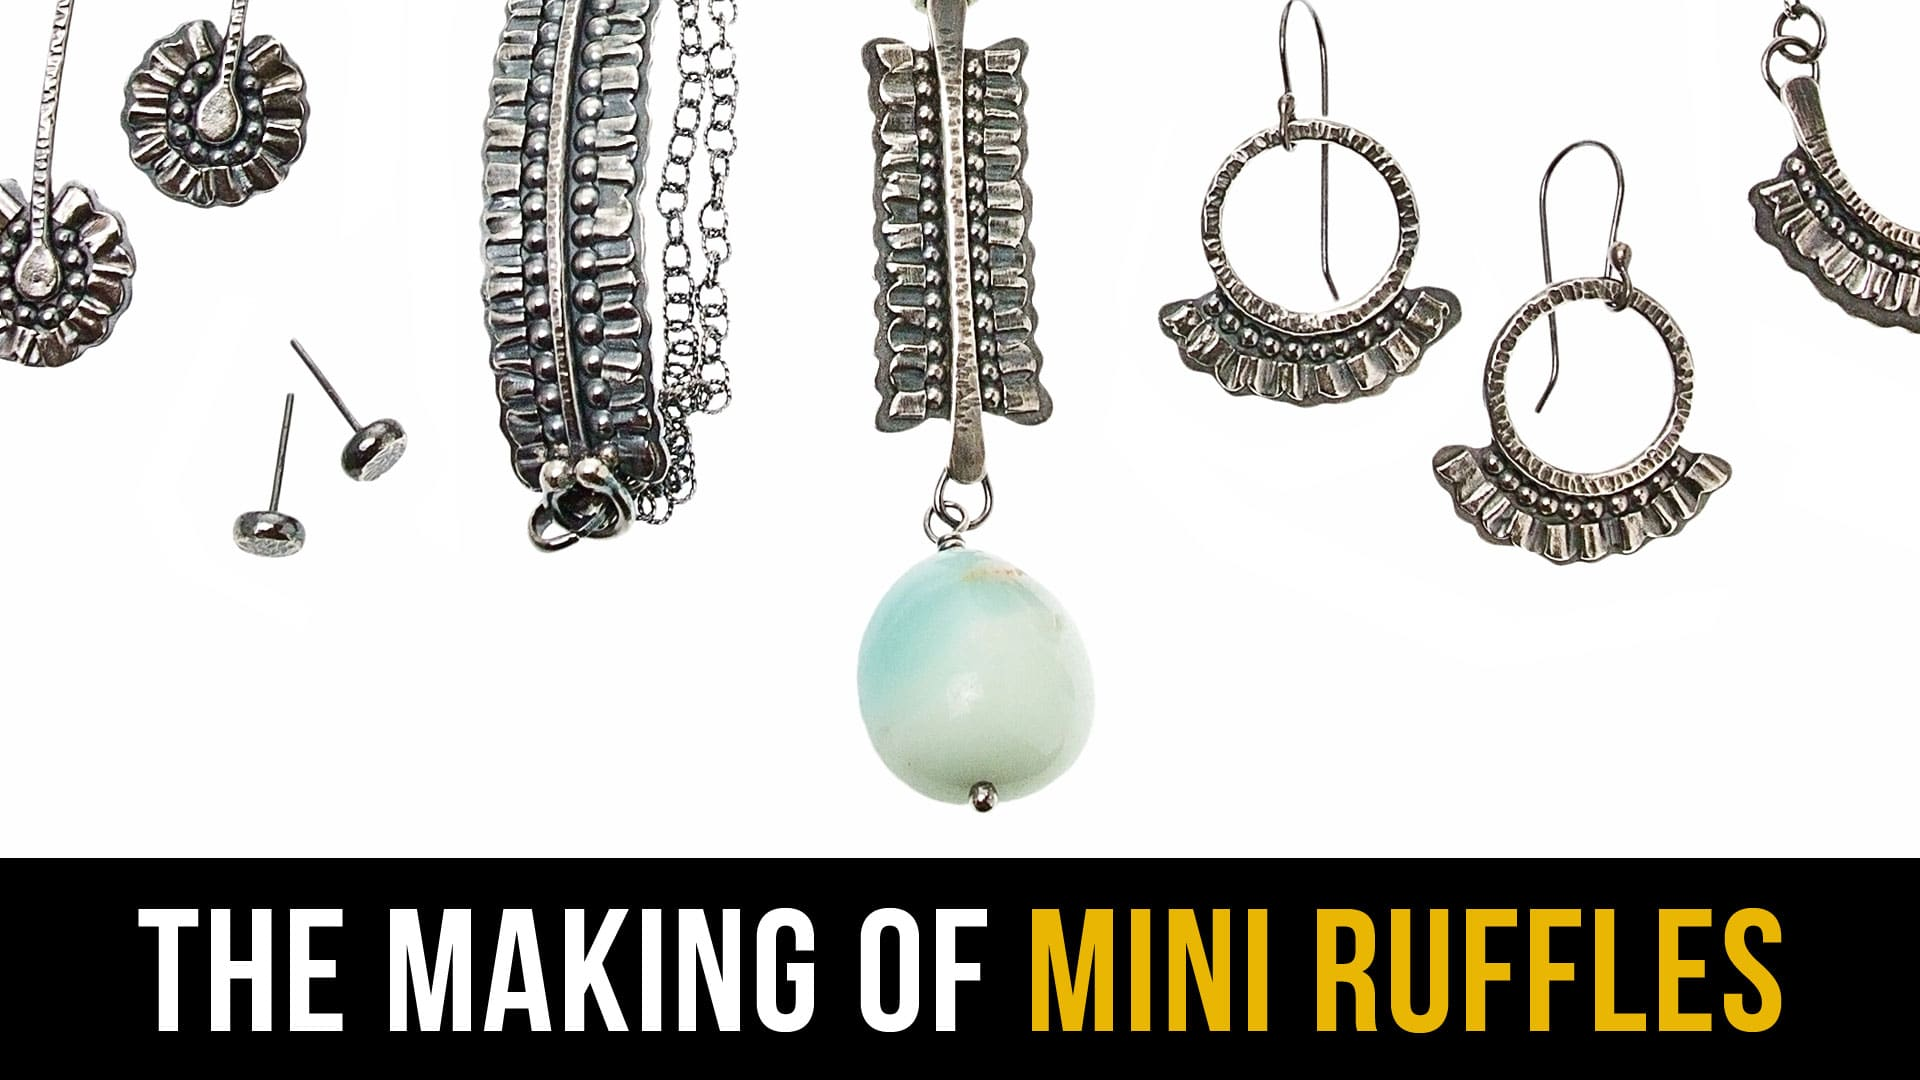 The making of mini ruffles collection. A video by Popnicute Jewelry